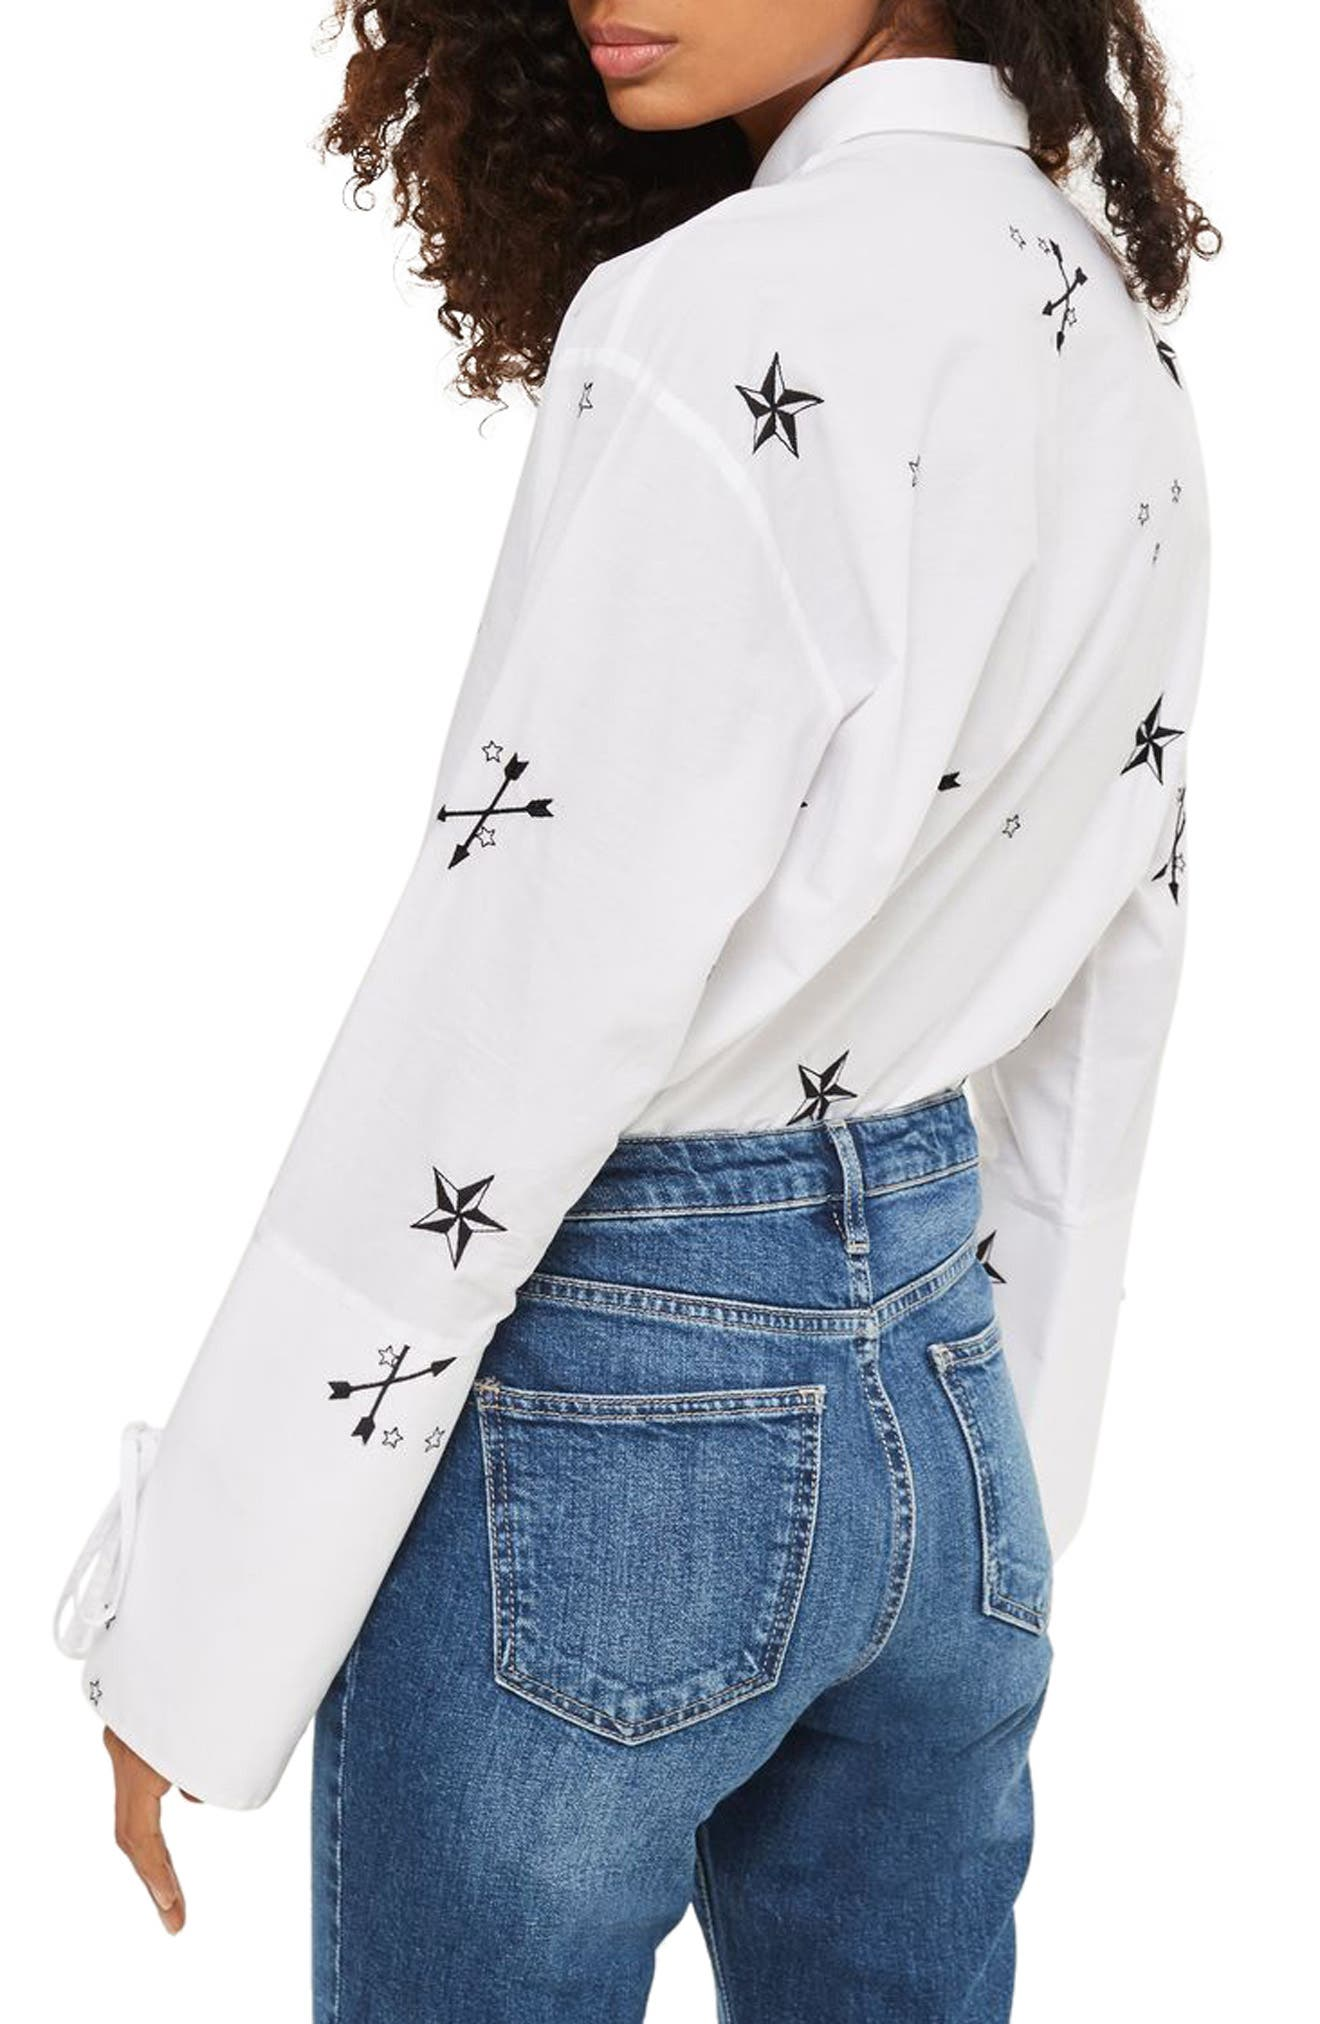 TOPSHOP,                             Star Embroidered Shirt,                             Alternate thumbnail 2, color,                             100